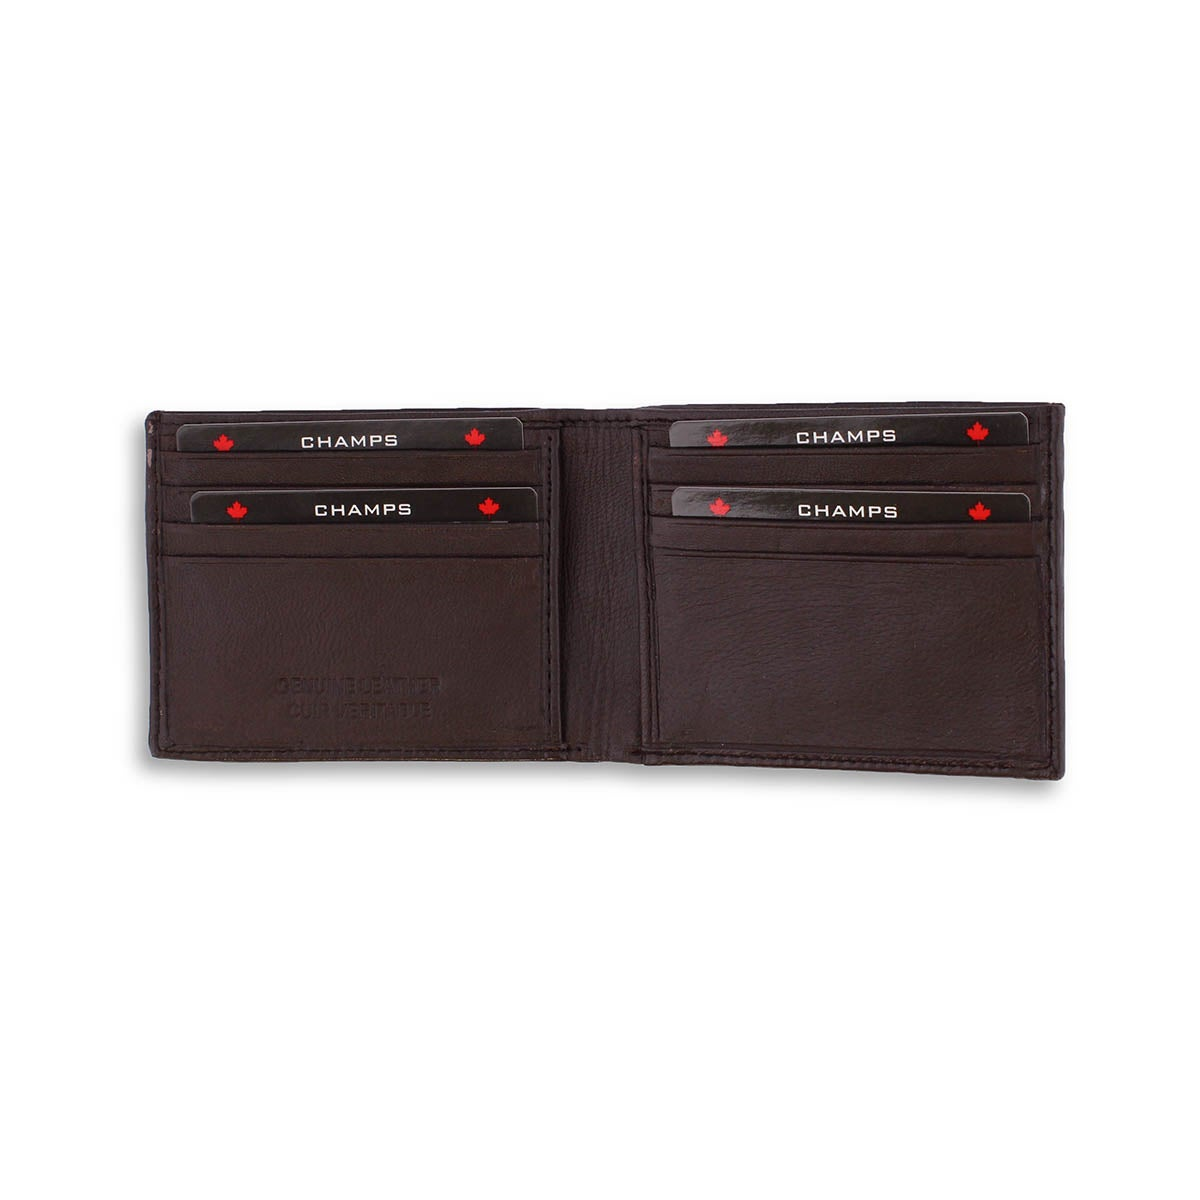 Mns brown sheep leather wallet